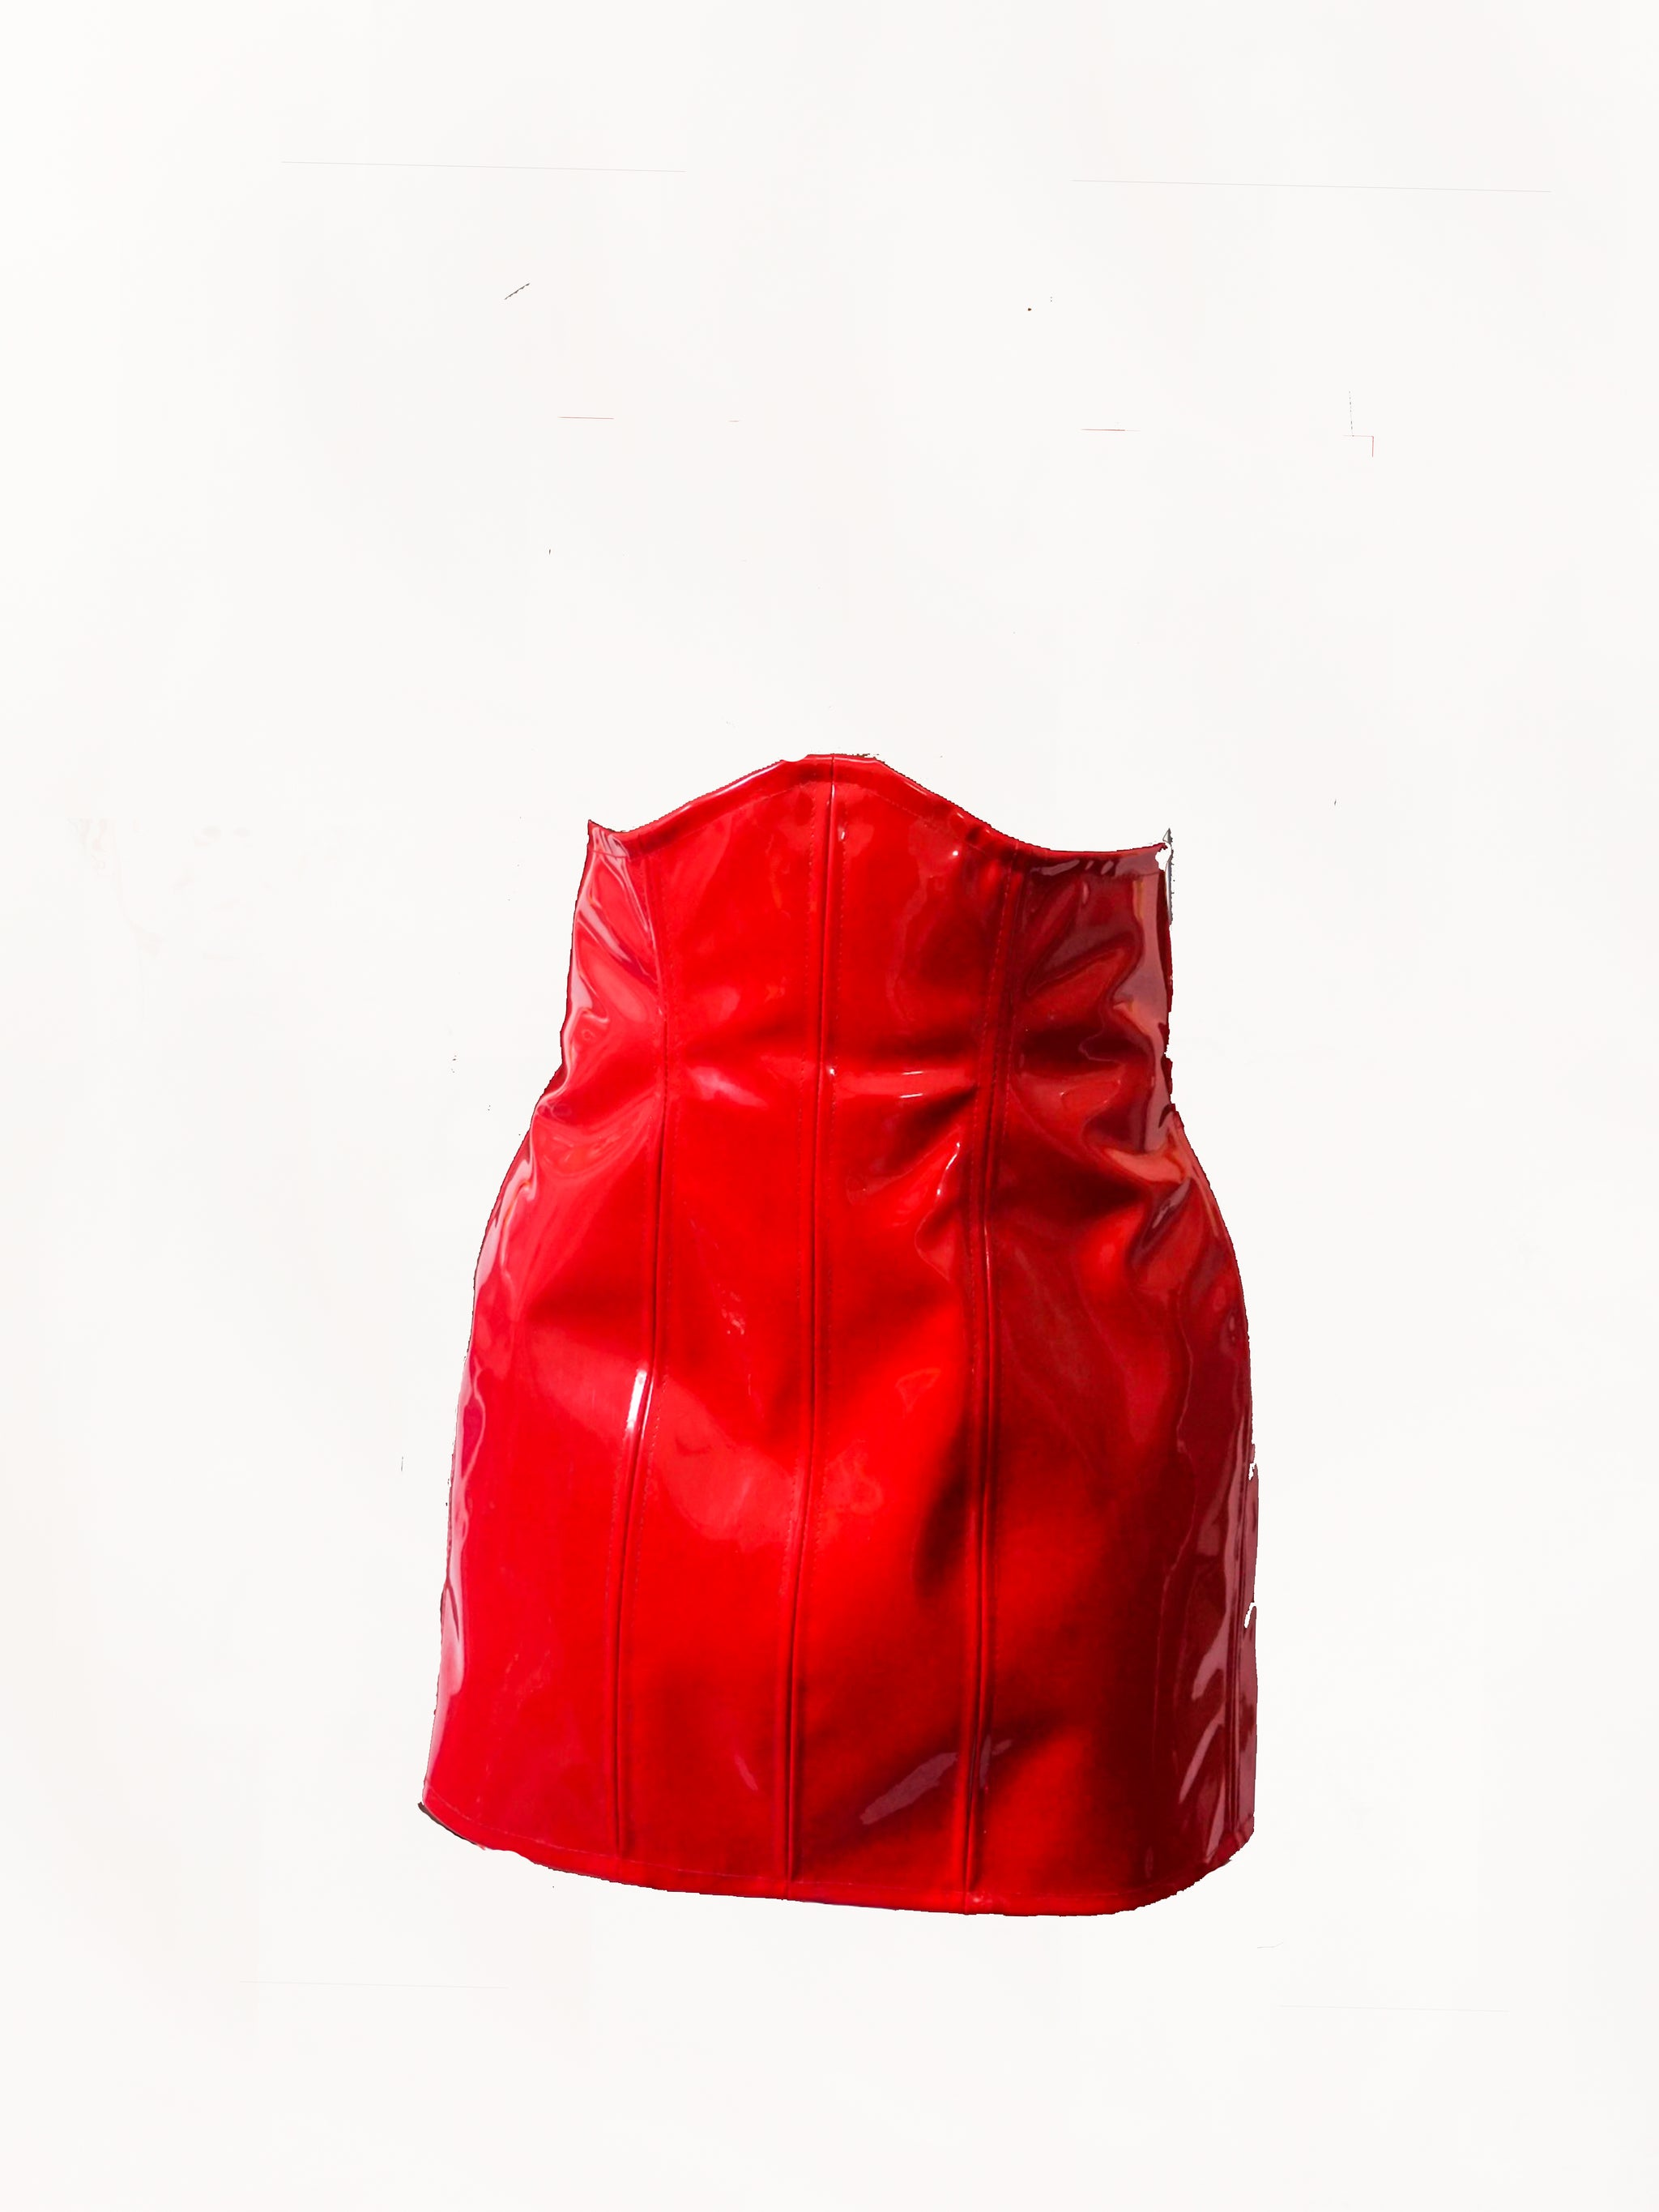 Corset Skirt - Red by GrayScale